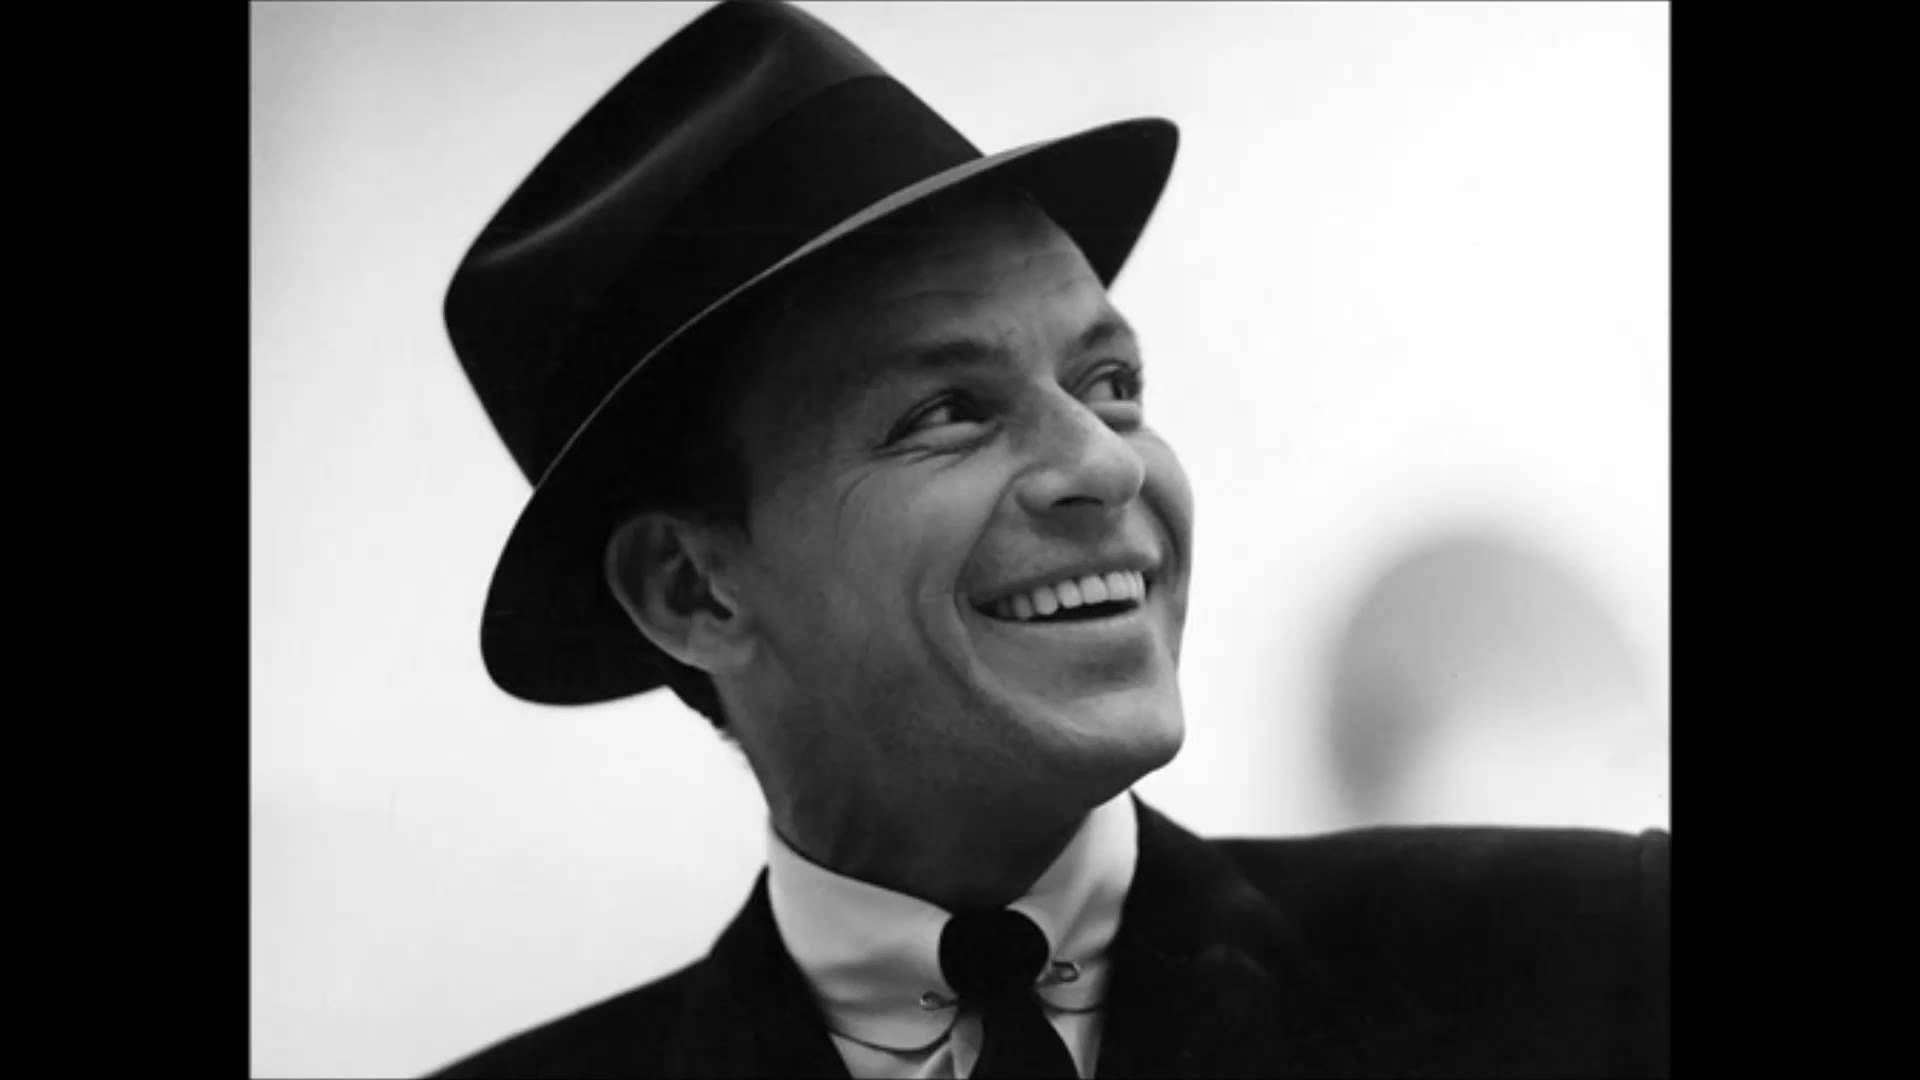 Frank Sinatra - I Thought About You